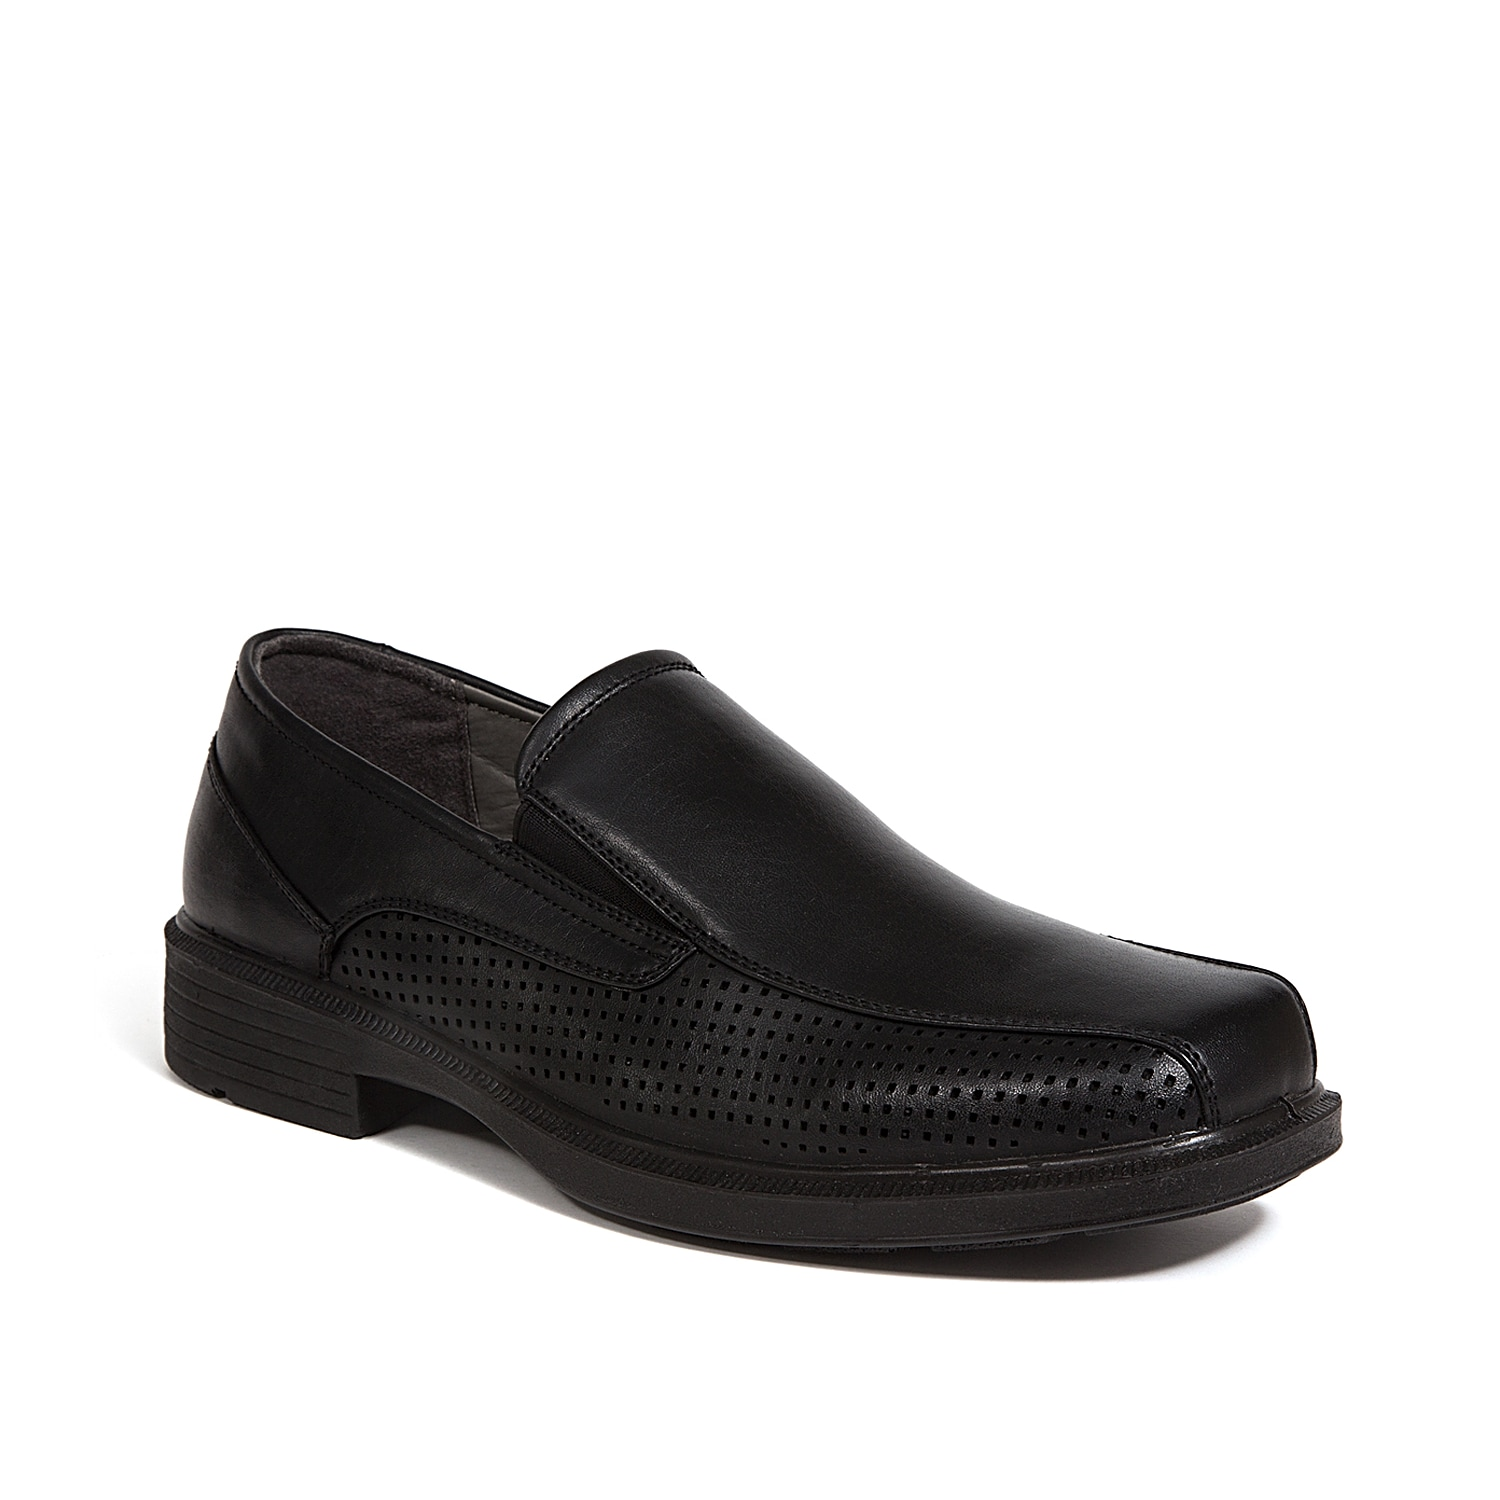 The Fortgreene slip-on from Deer Stags updates a classic silhouette. With perforated sides and a cushioned footbed with arch support, this pair will become an instant favorite!